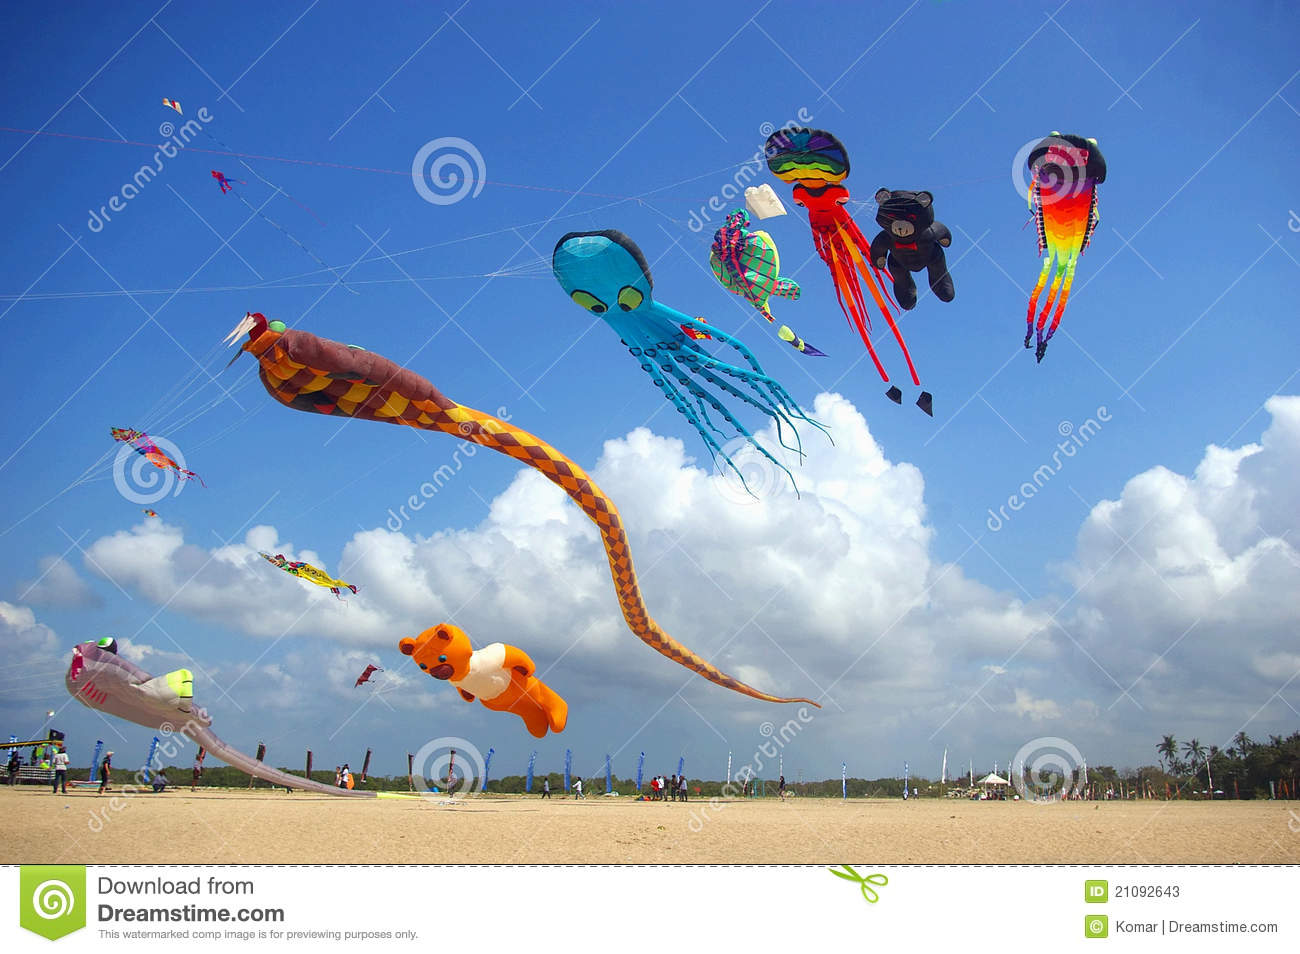 Kites Flying On The Beach Stock Photos - Image: 21092643